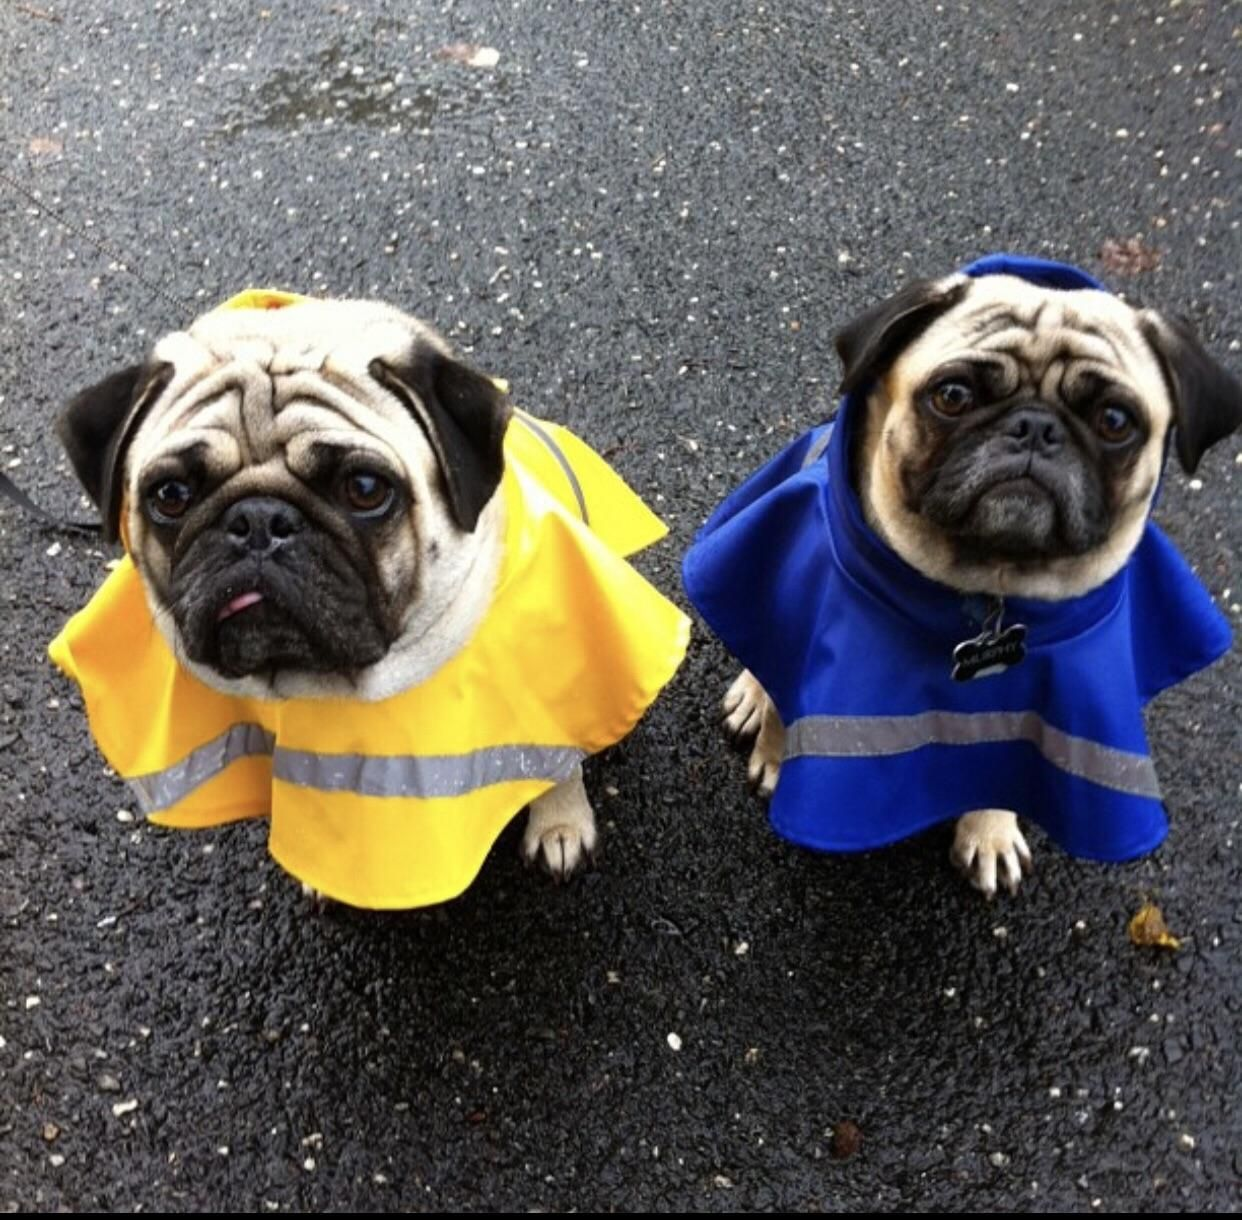 My 2 Pugs In Their Raincoats Https Ift Tt 2qqfu3s French